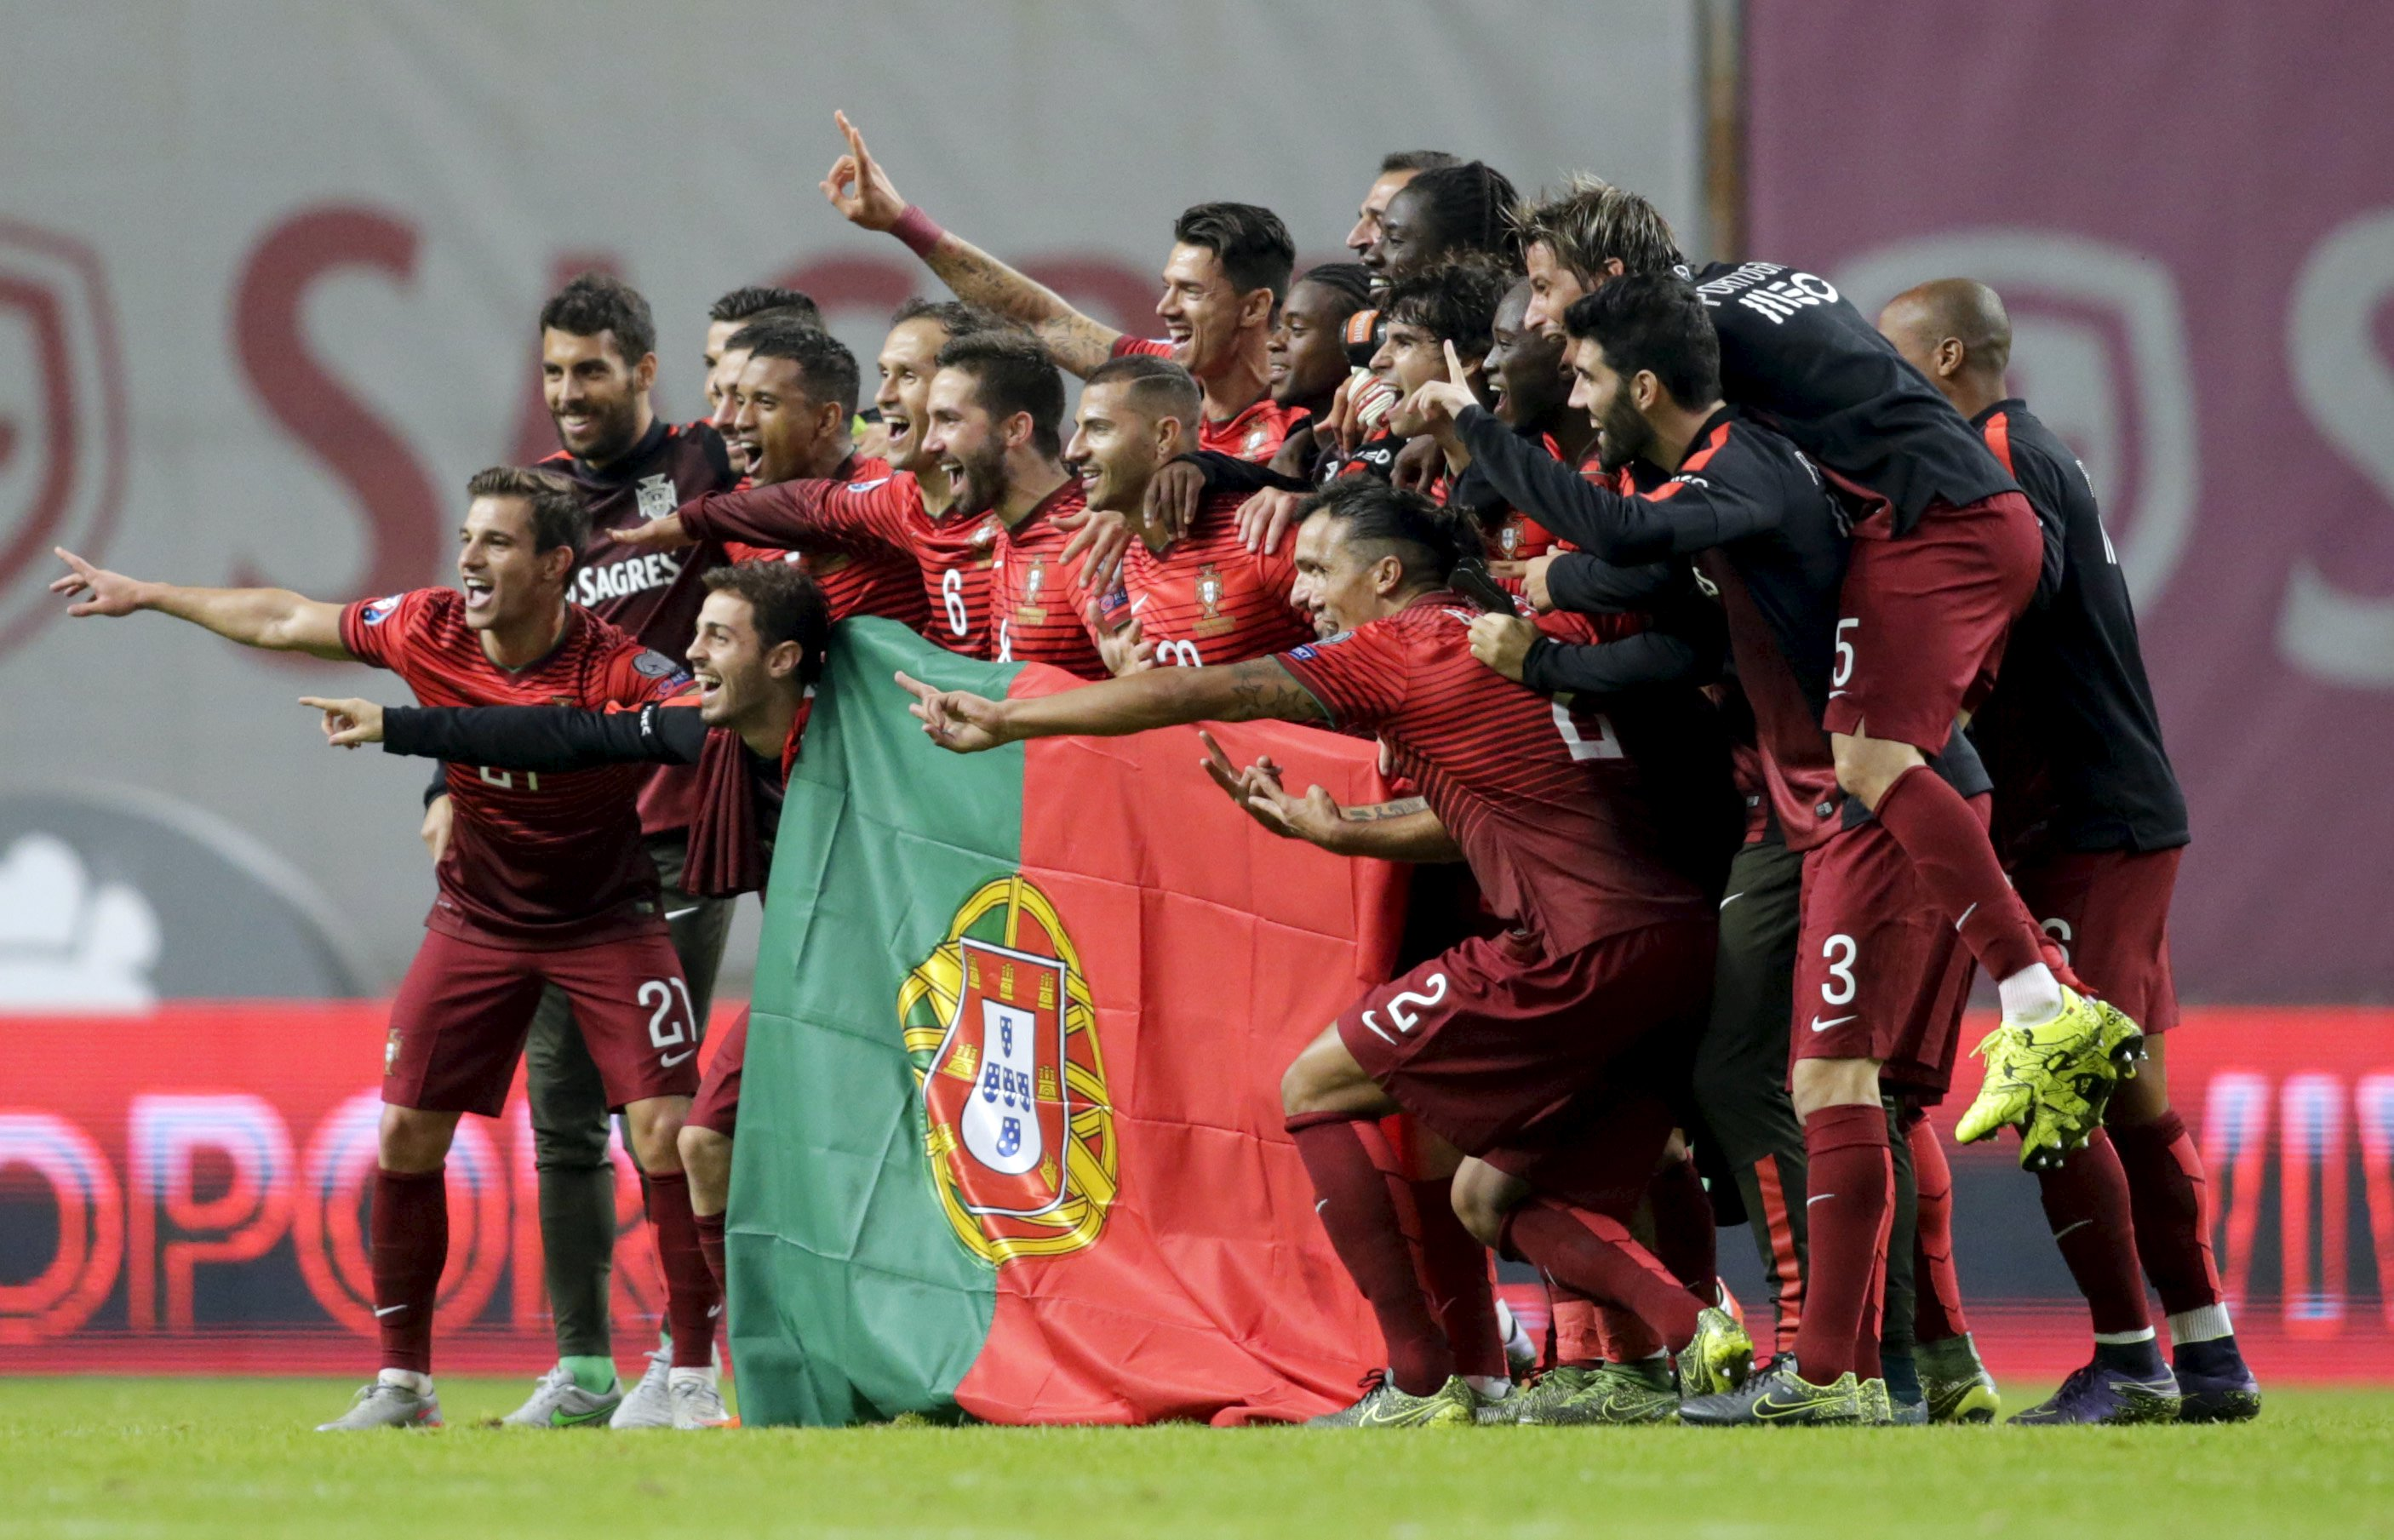 Portugal's team poses with the flag of Portugal at the end their Euro 2016 qualifying soccer match against Denmark at Municipal Stadium in Braga, Portugal, October 8, 2015. Photo: Reuters